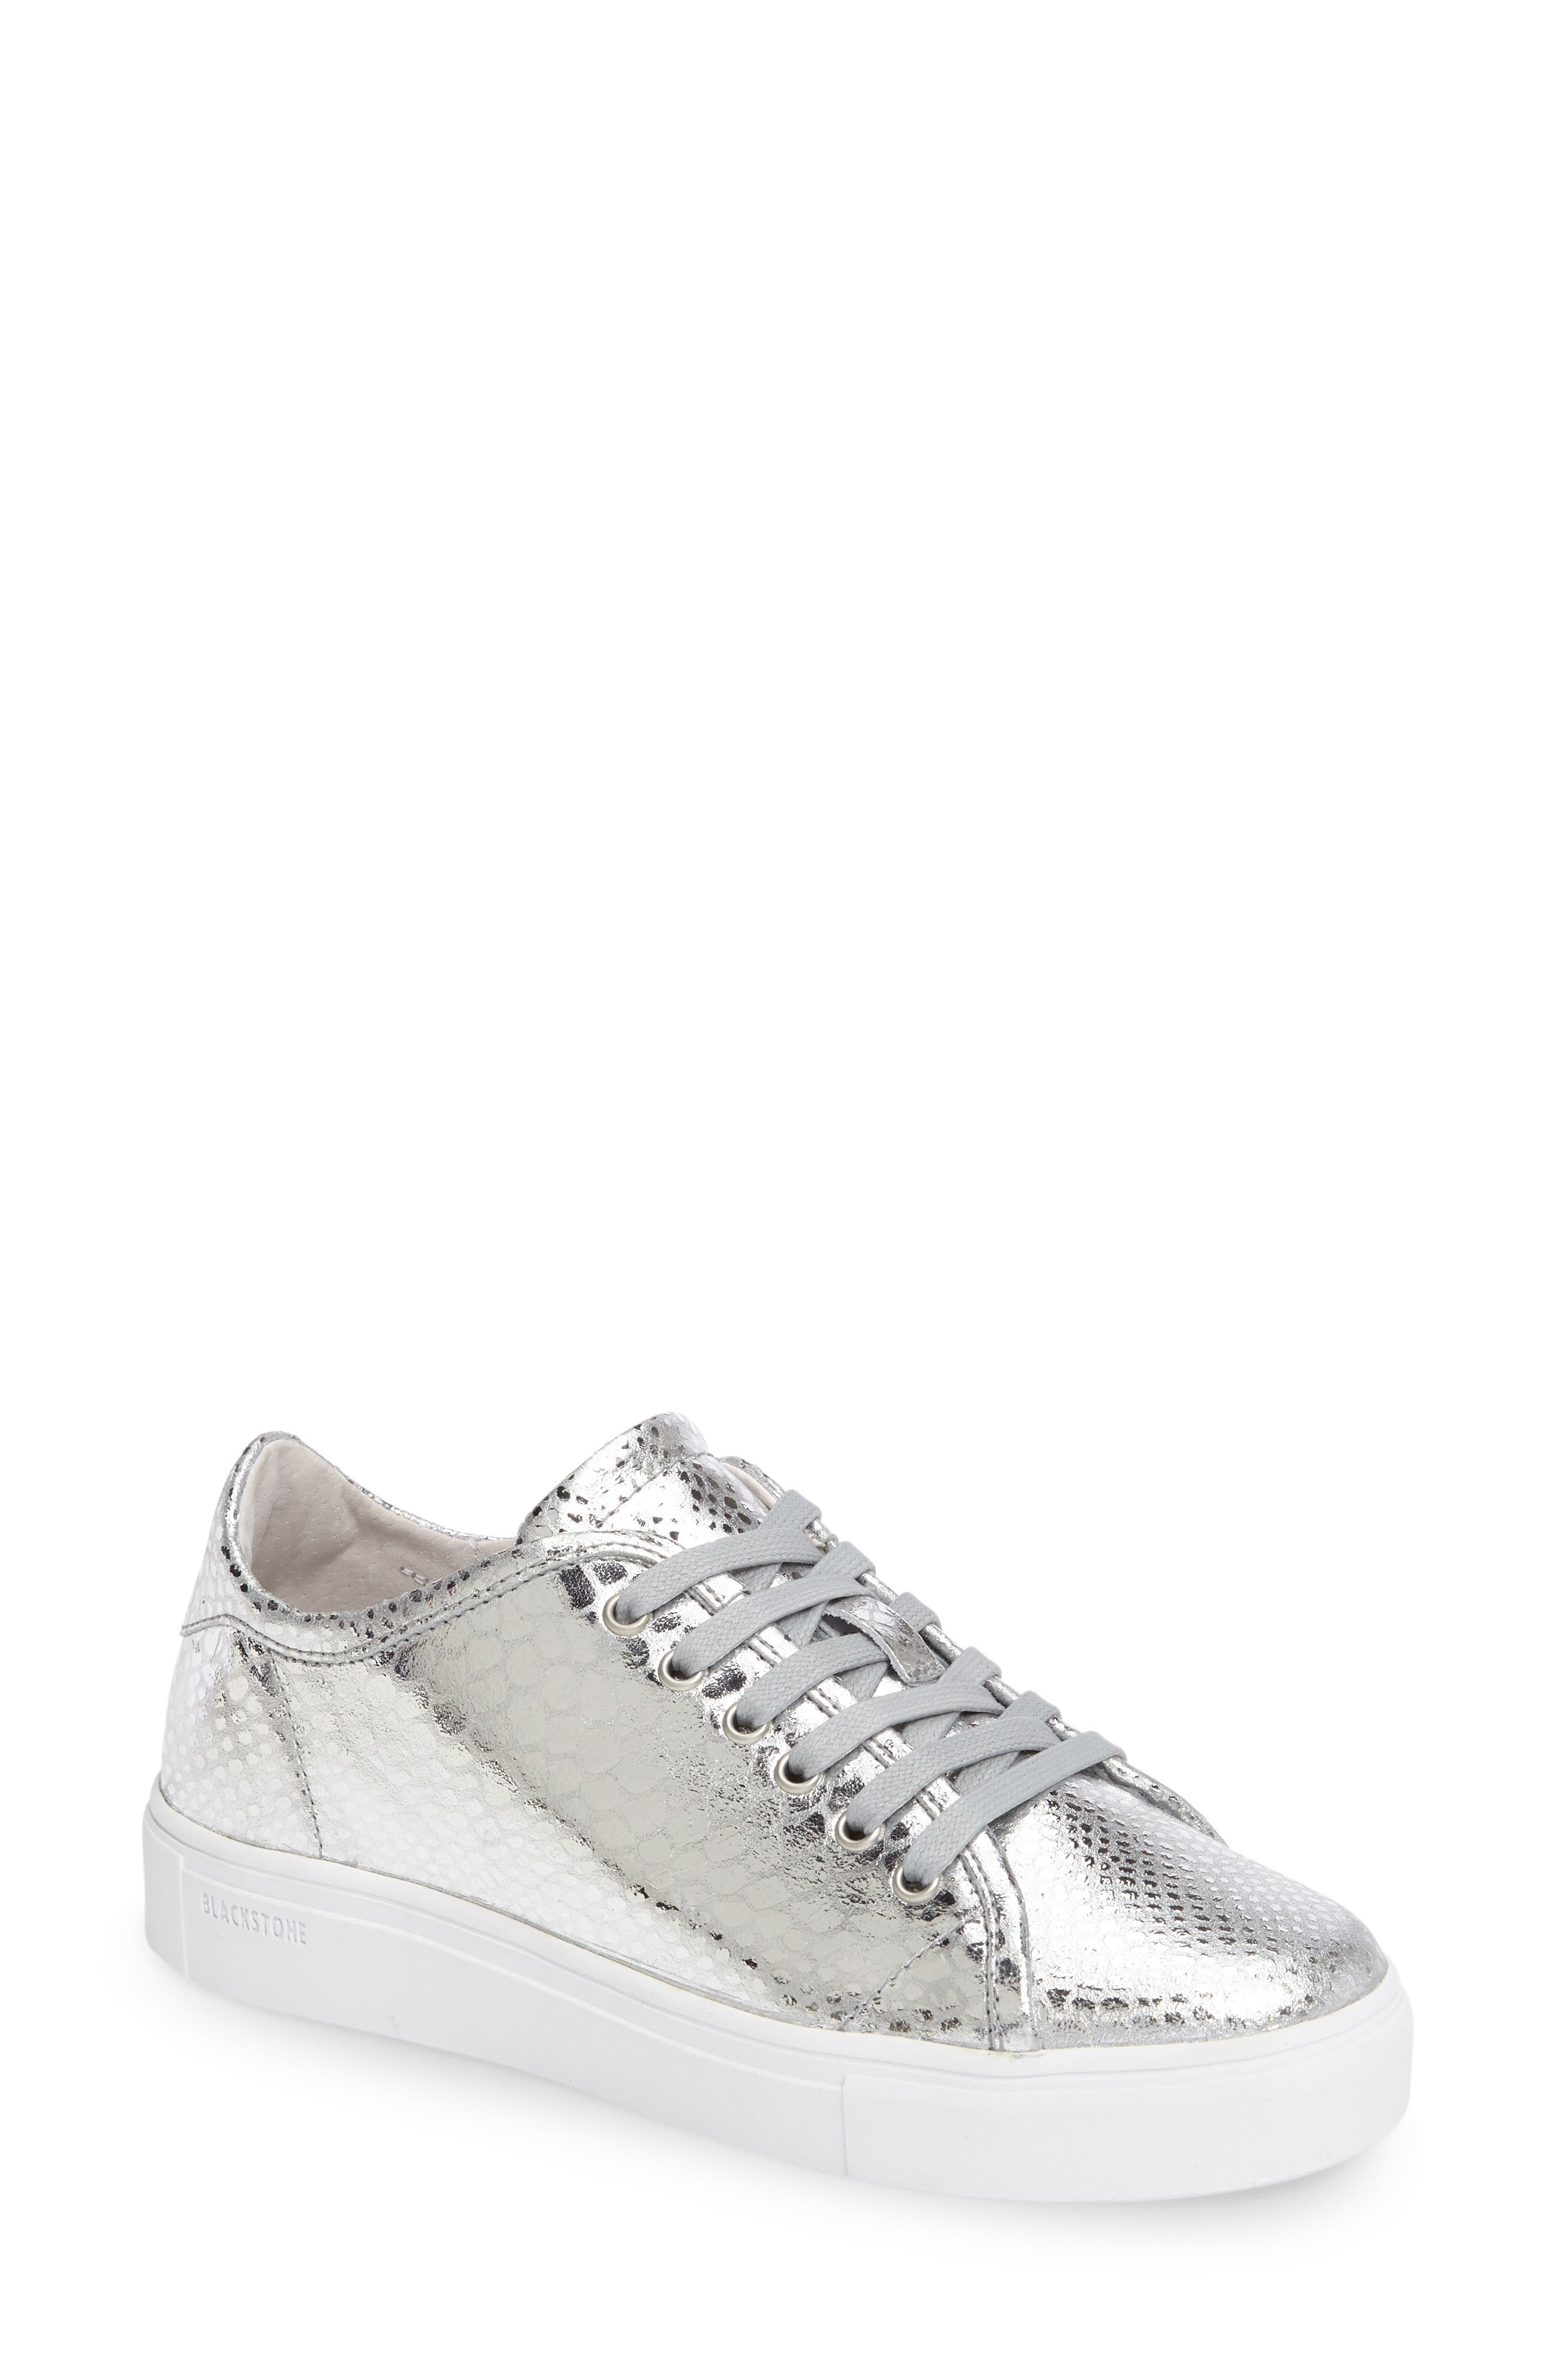 NL32 Sneaker,                             Main thumbnail 1, color,                             Silver Leather